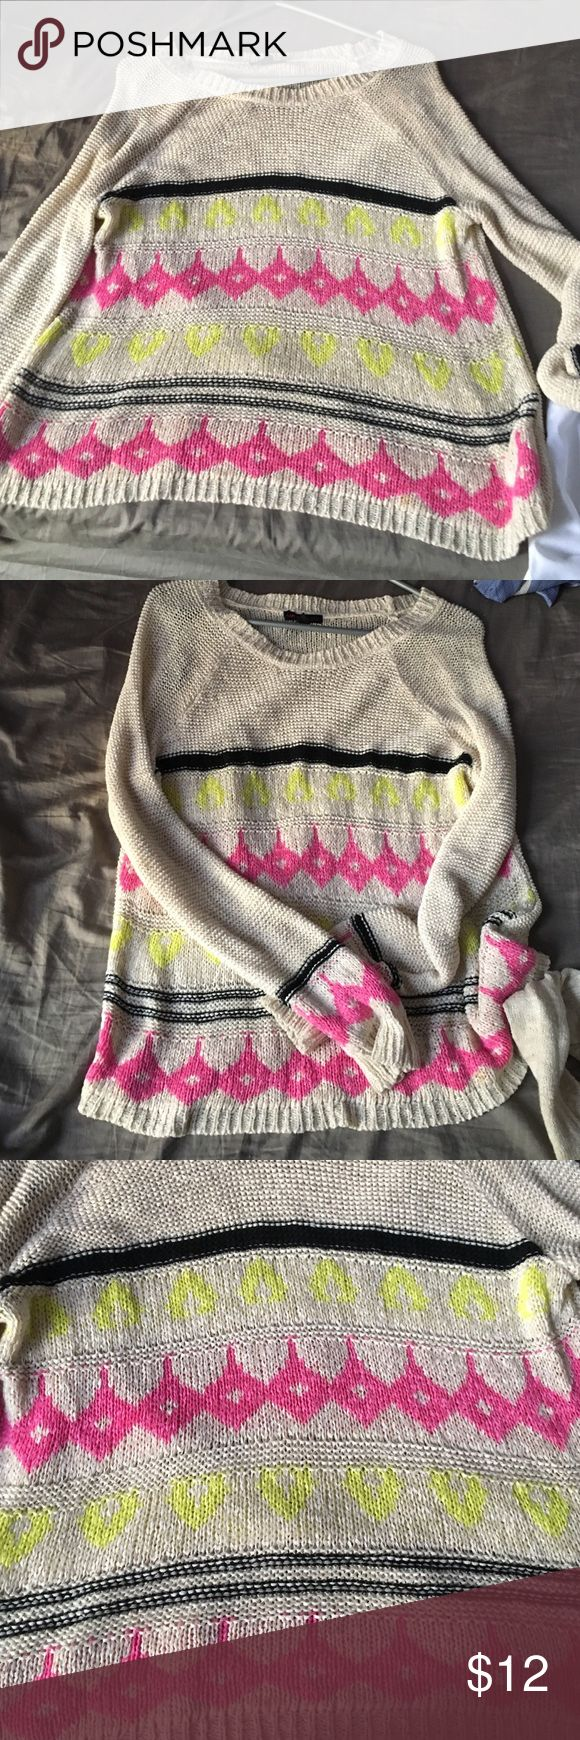 Oversized sweater Cute and comfy oversized sweater. Light material. Worn about 3 times. Material Girl Sweaters